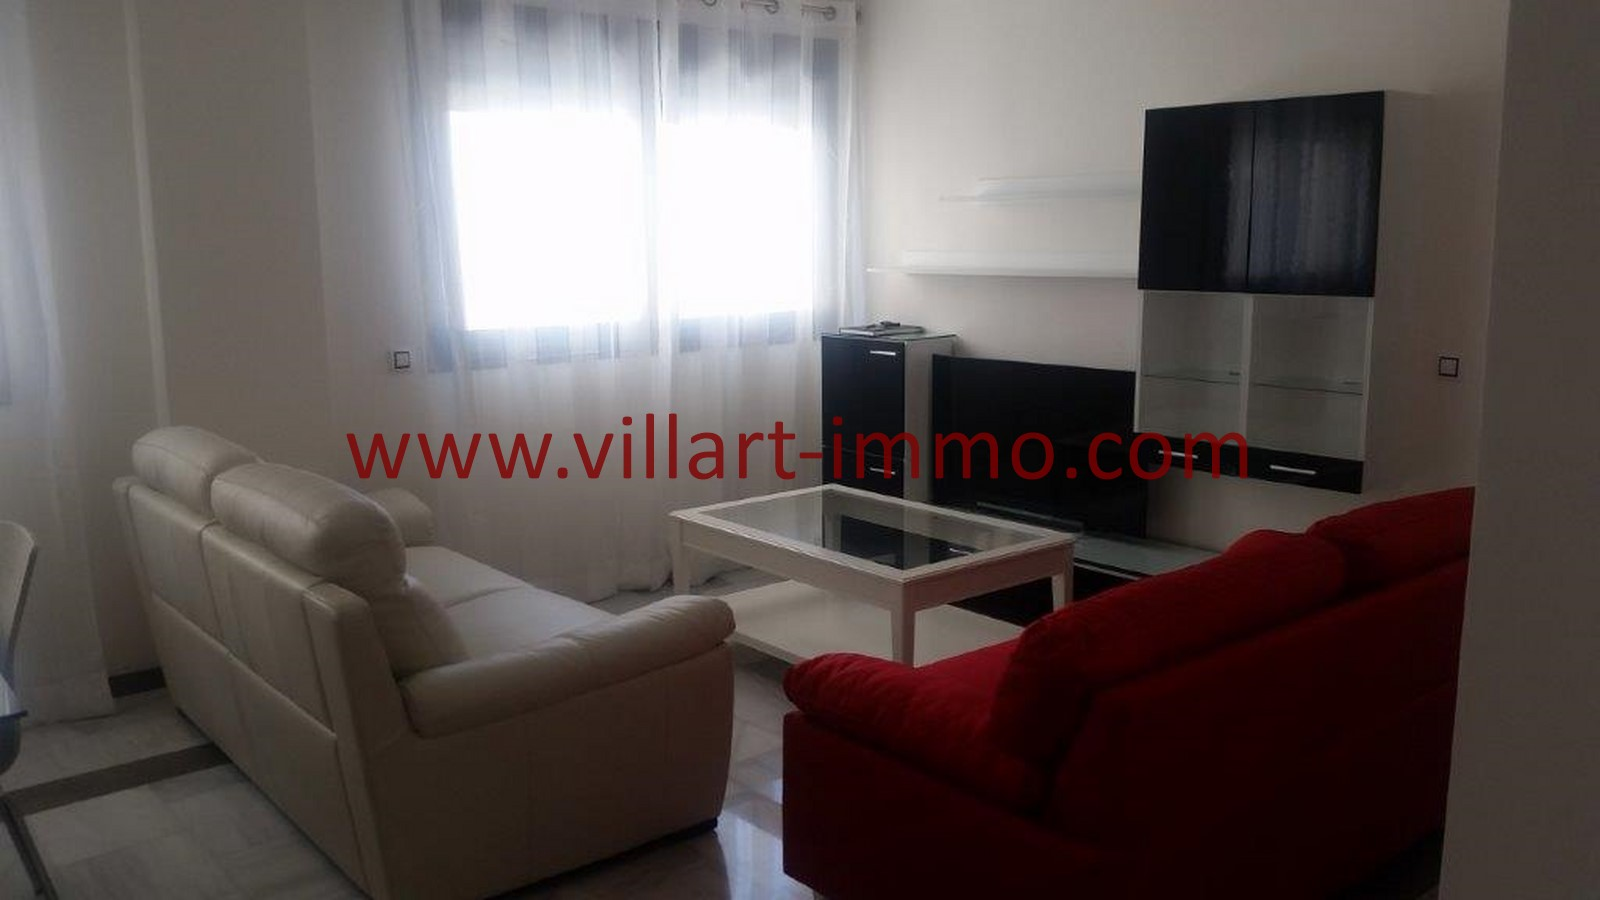 4-location-appartement-meuble-tanger-salon-1-l975-villart-immo